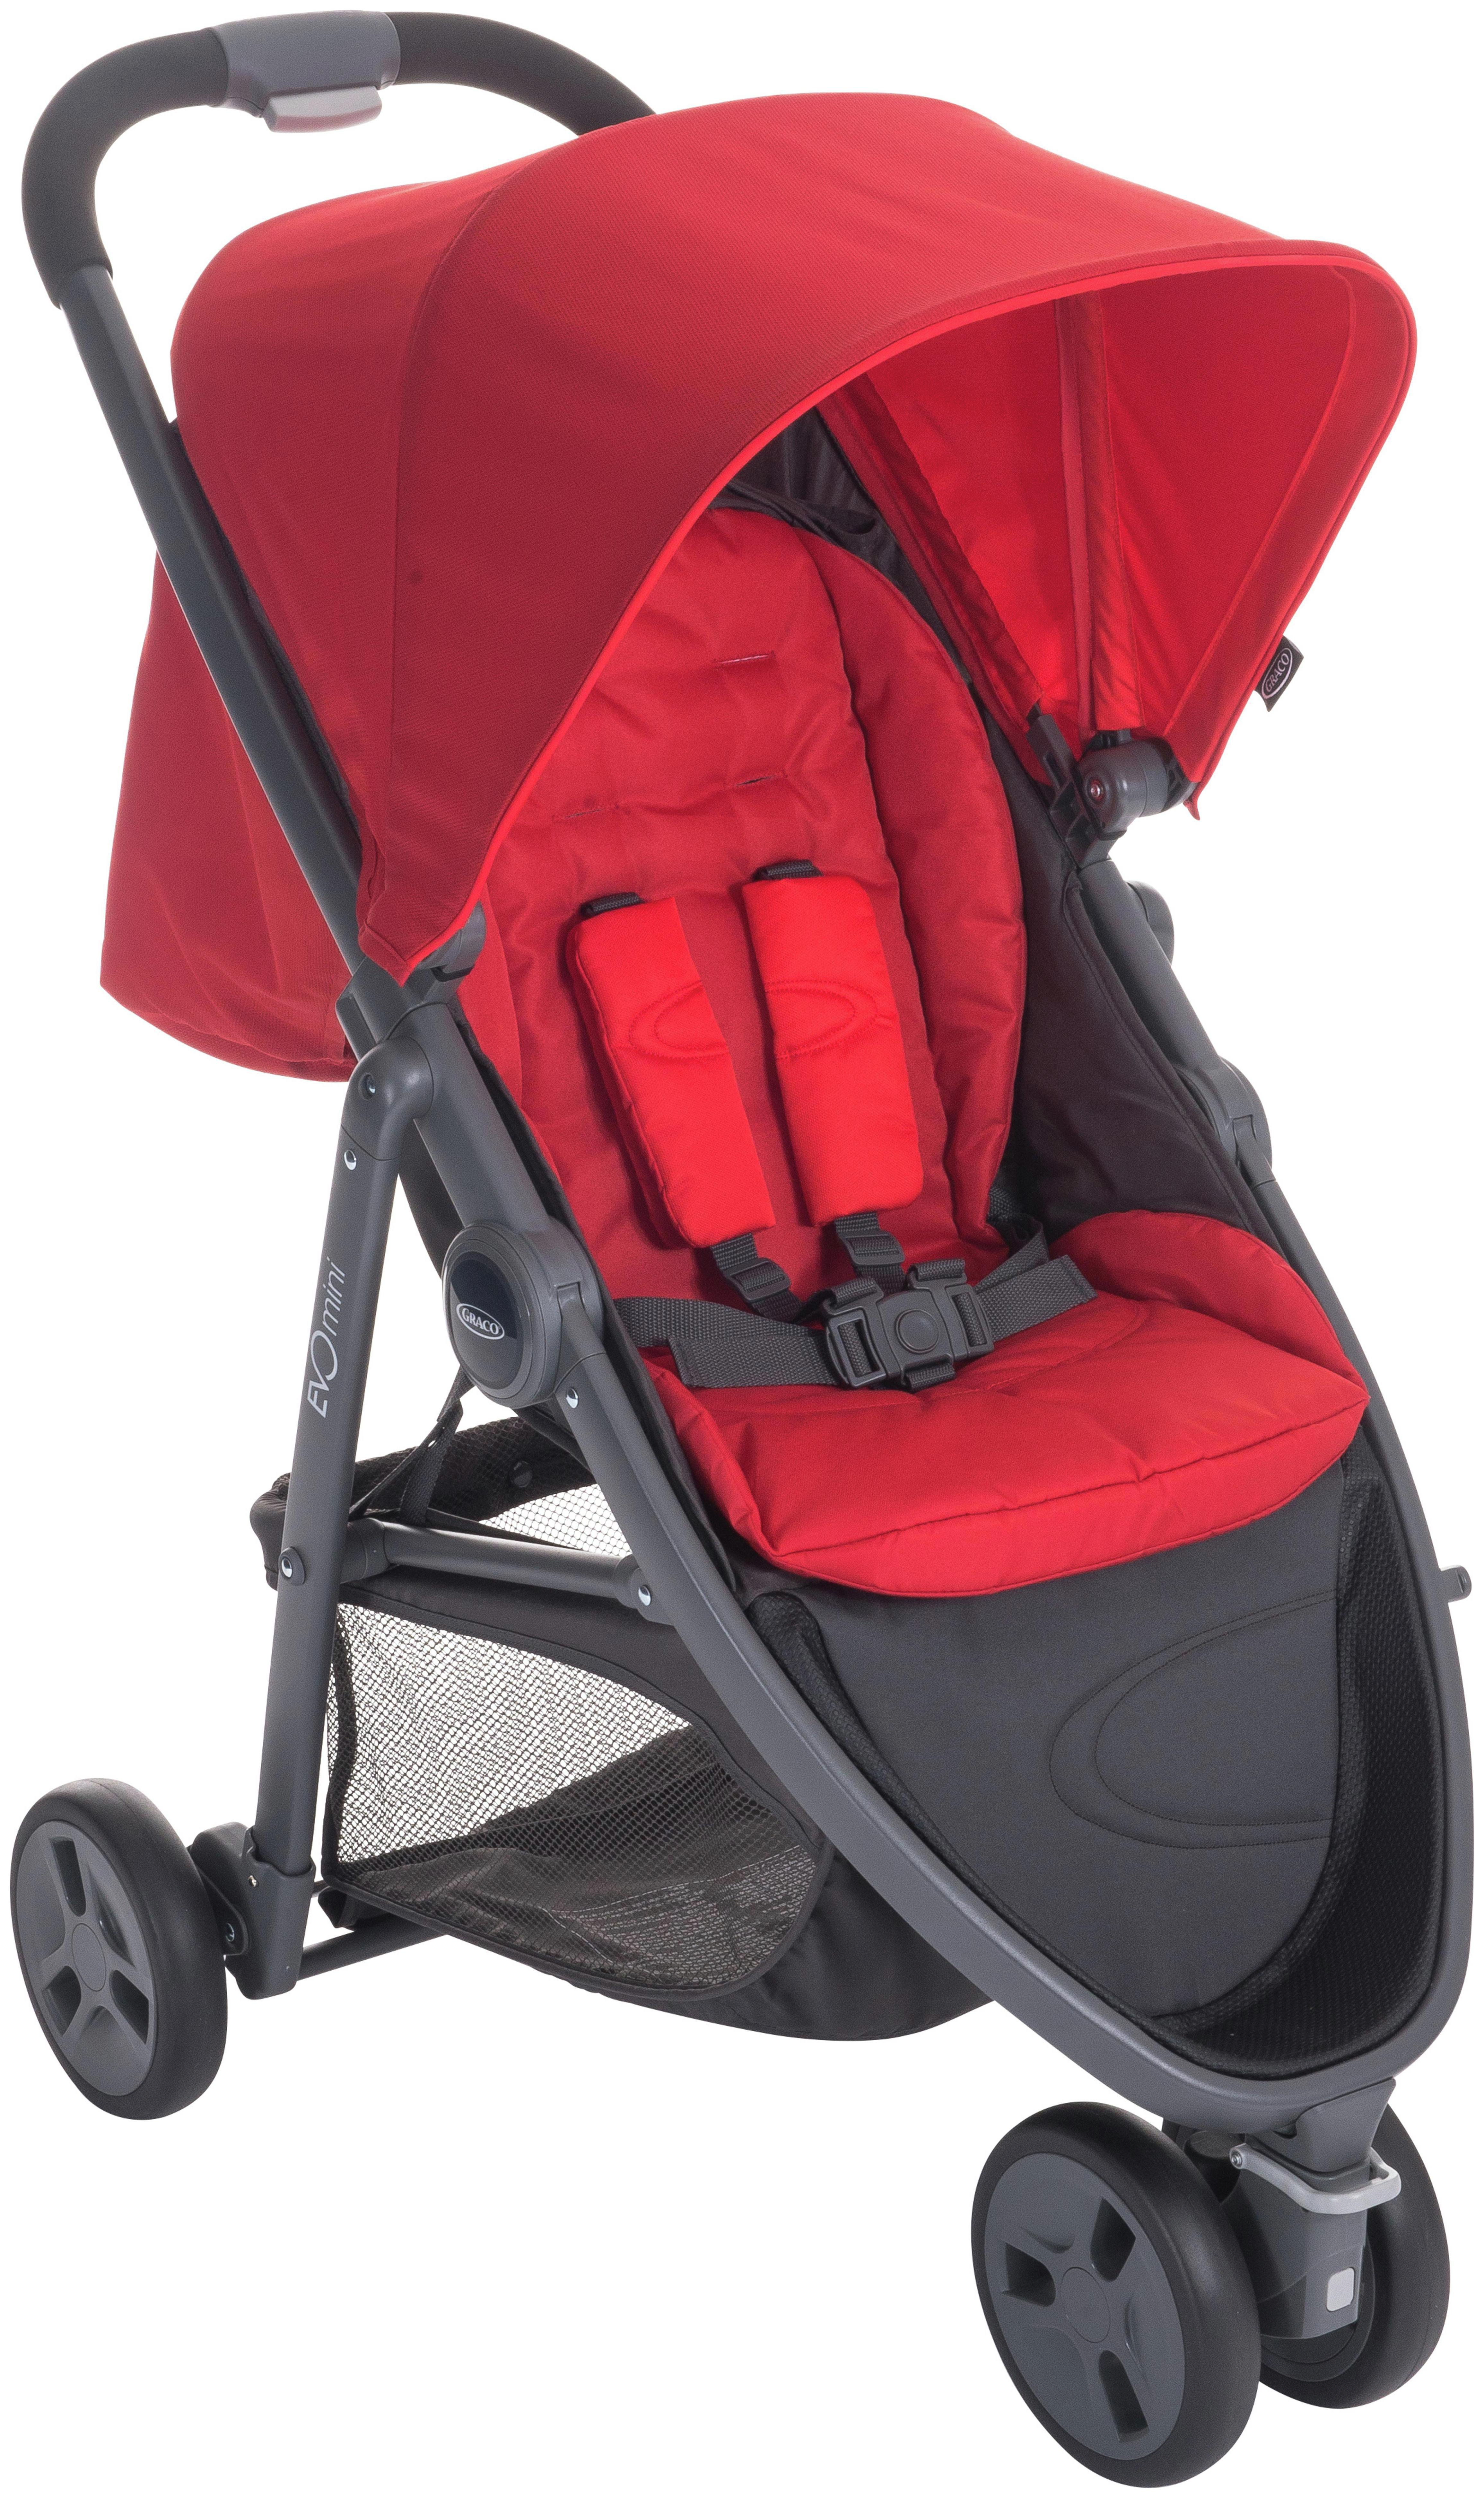 Image of Graco Evo Fiery Red Mini Pushchair.